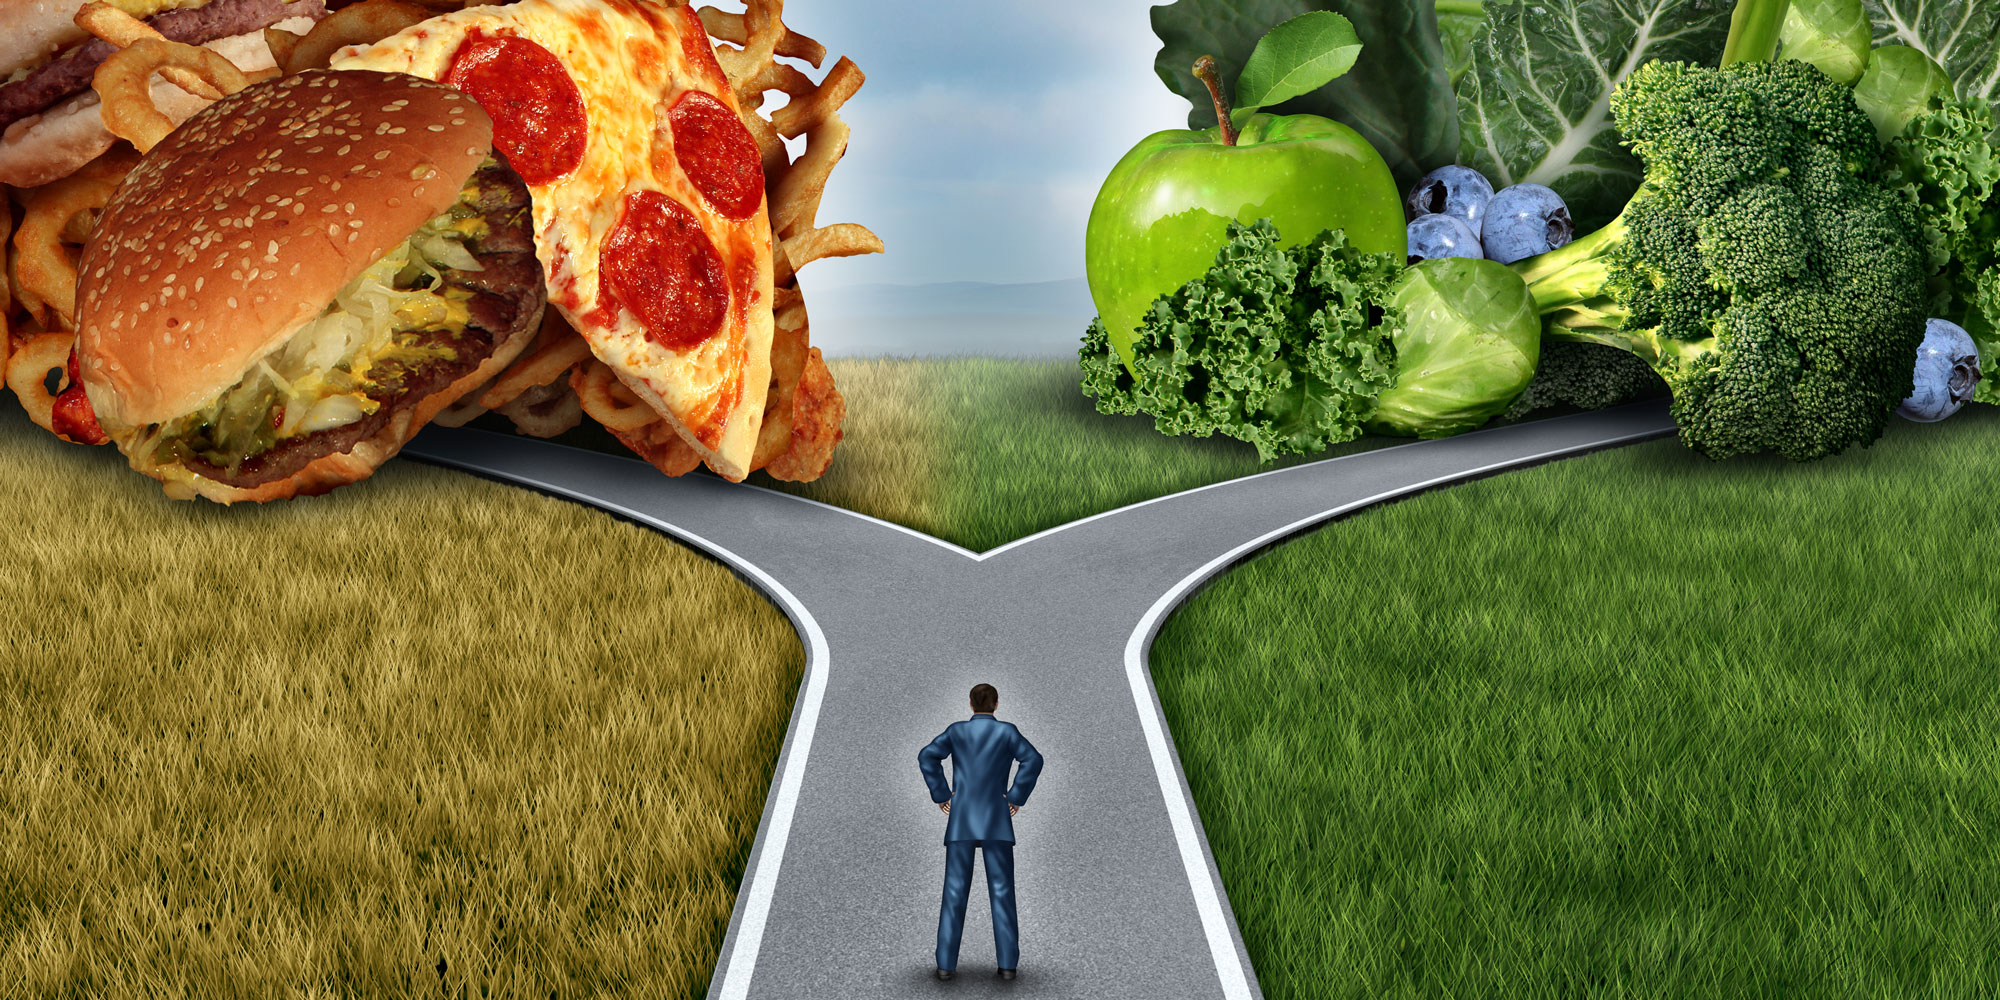 PROJECTS-Neural-markers-of-the-effectiveness-of-health-messages-on-food-choices